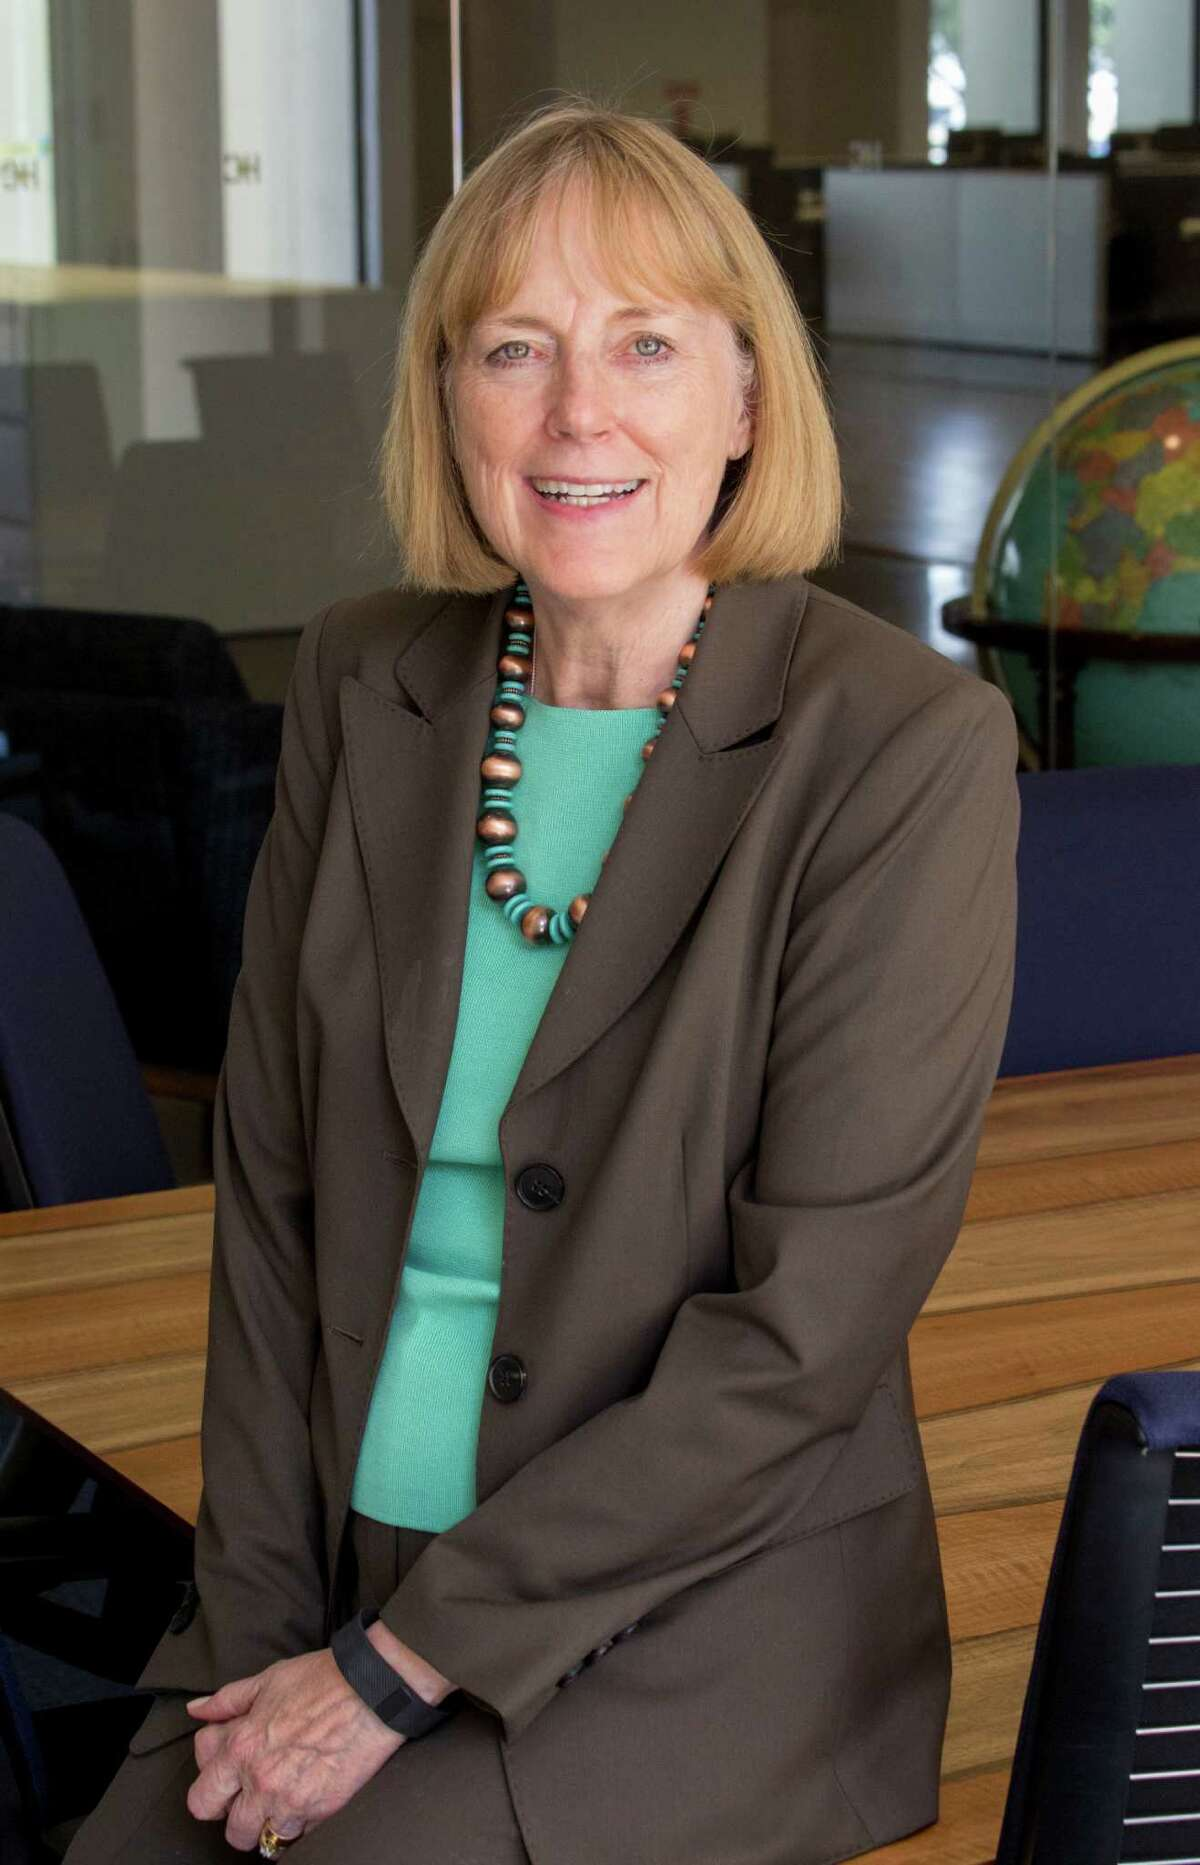 Sherry Radack is seeking re-election as judge for the Texas1st Court of Appeals. (Photo: JeremyCarter/ Houston Chronicle)